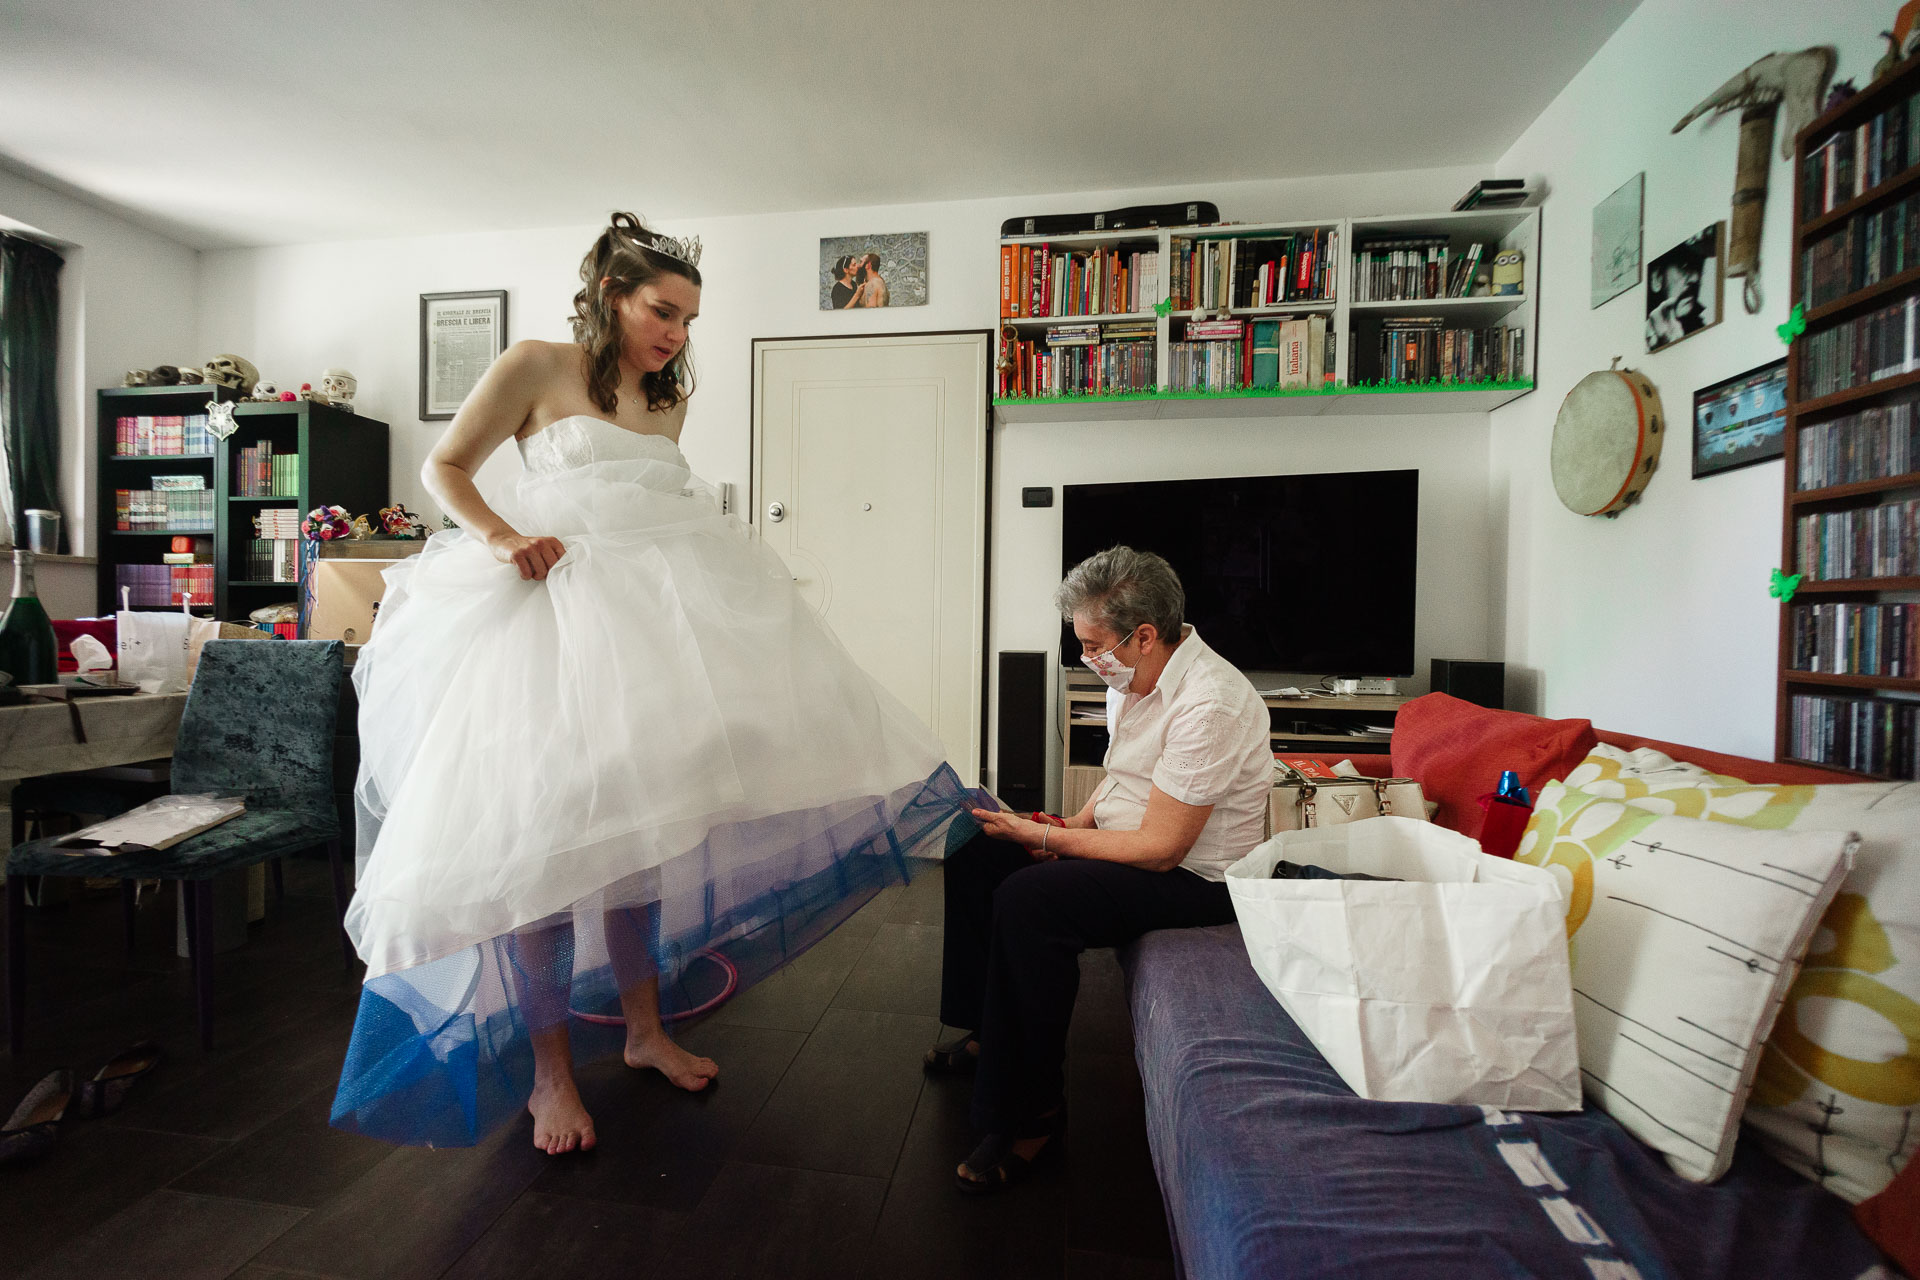 Castegnato BS Wedding Image | Barefoot and relaxed, the bride asks to have her dress altered